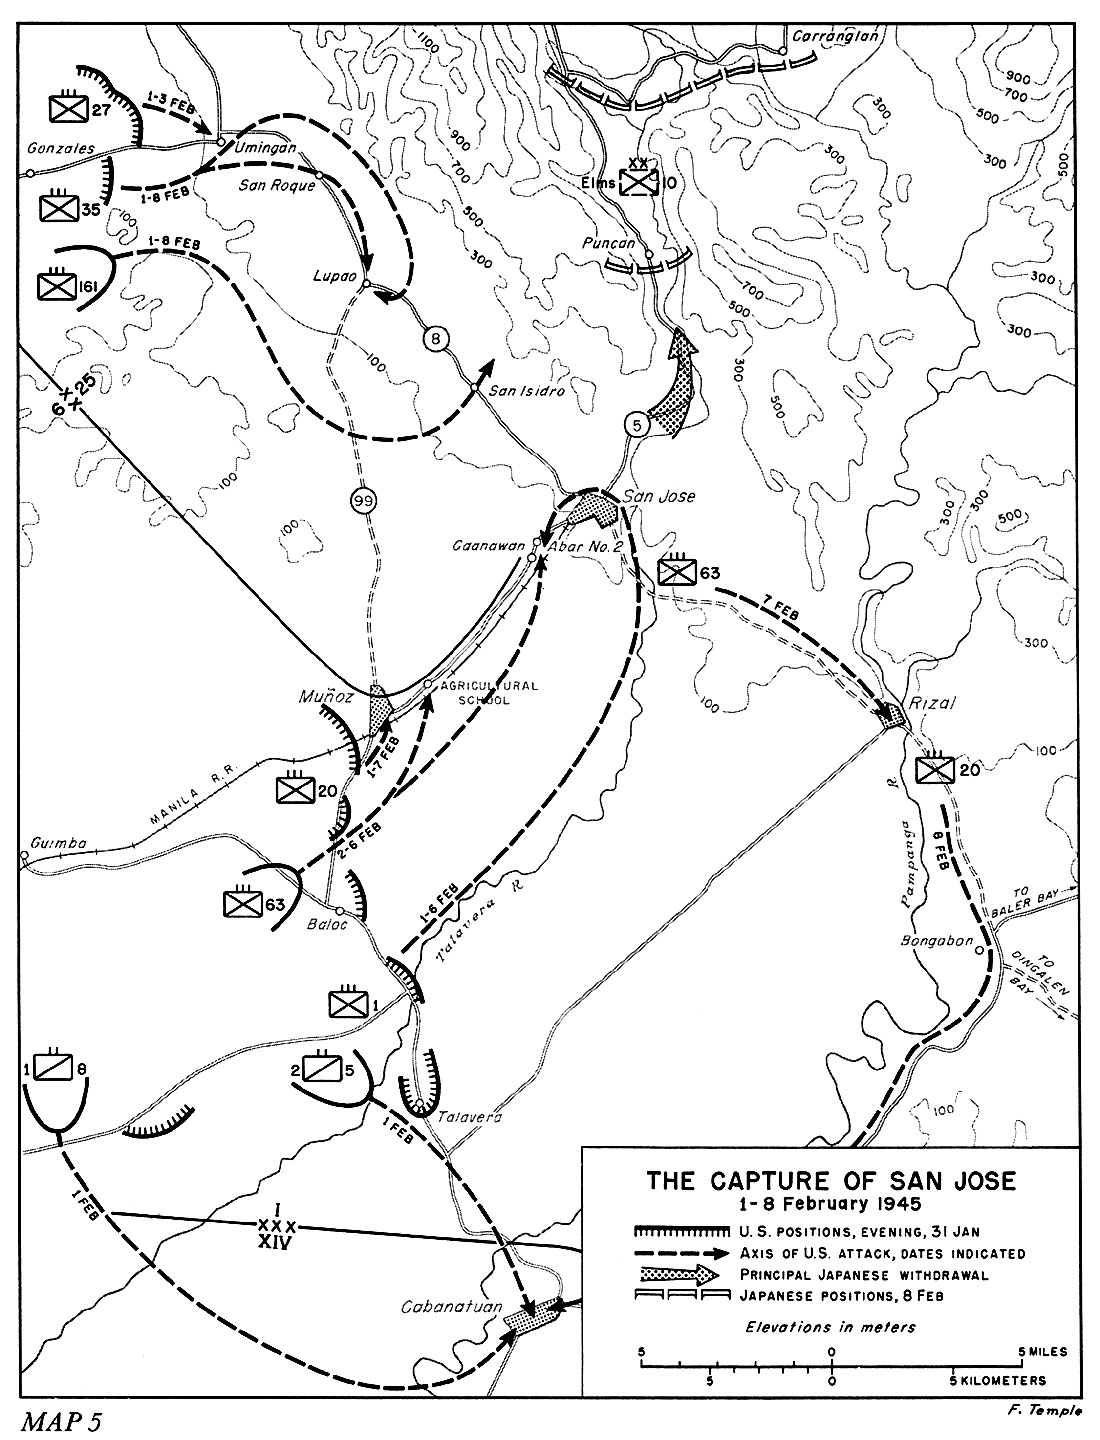 hyperwar us army in wwii triumph in the philippines chapter 11  map 5 the capture of san jose 1 8 february 1945